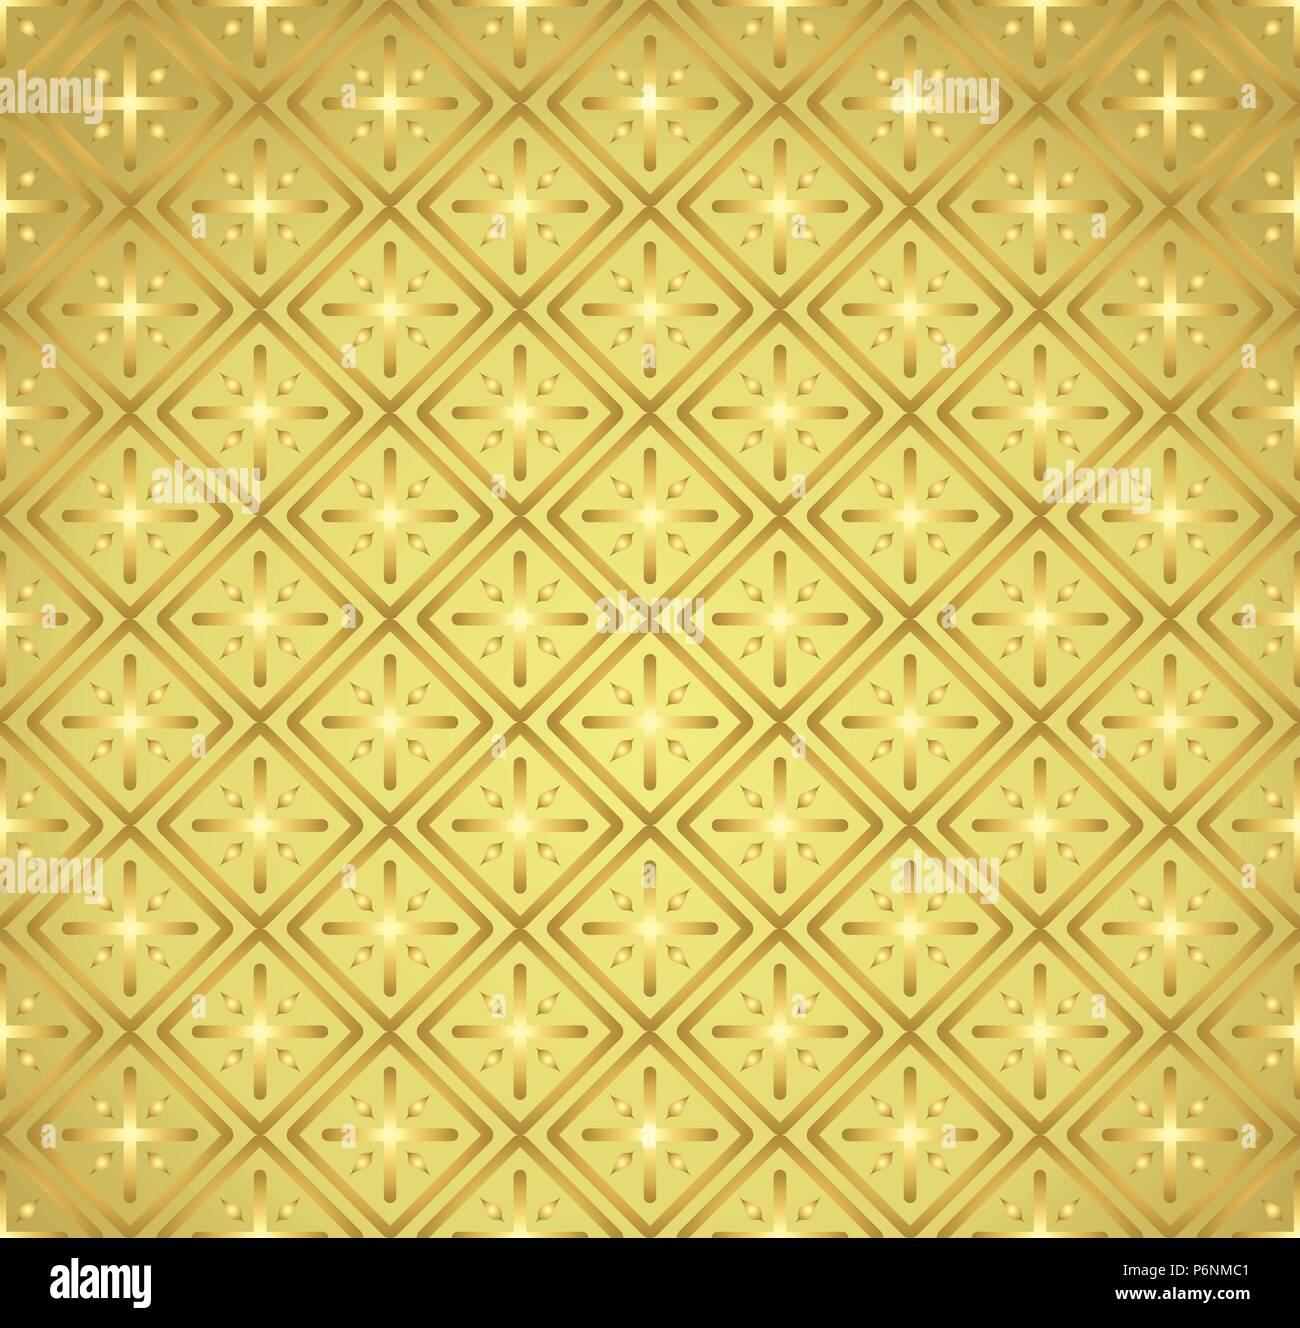 Gold Plus sign and rectangle shape seamless pattern. Abstract pattern style for graphic or modern design. - Stock Vector